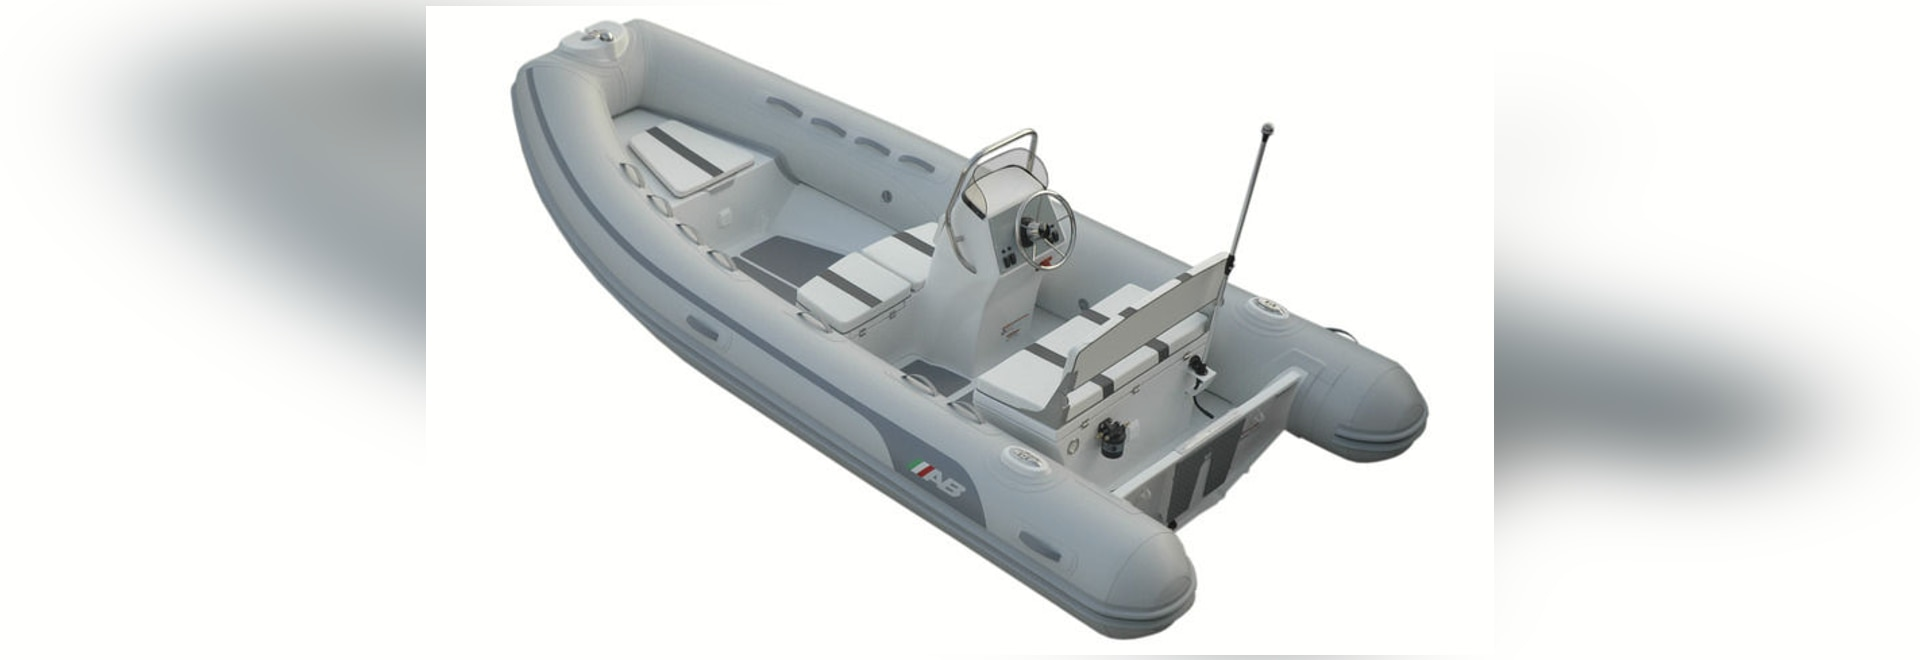 NEW: side console inflatable boat by AB Inflatables